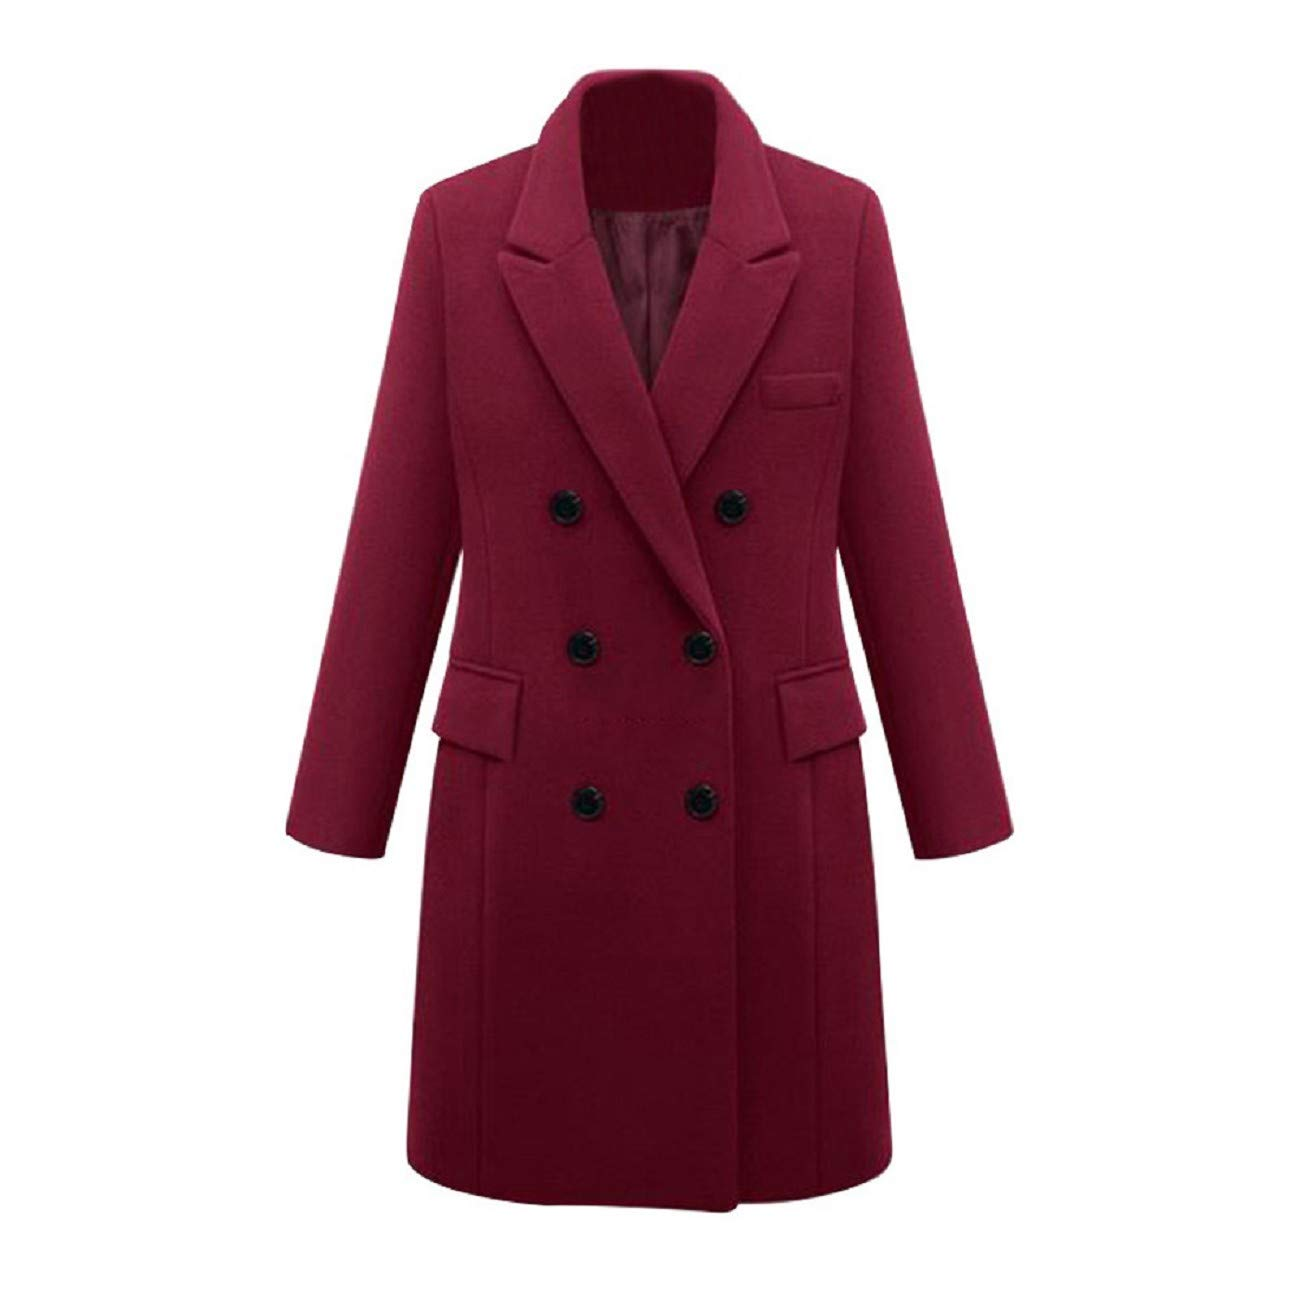 Adreamess Winter Womens Lapel Wool Coat Double Breasted Button Trench Jacket Thicken Long Parka Overcoat Outwear Wine Red by Adreamess